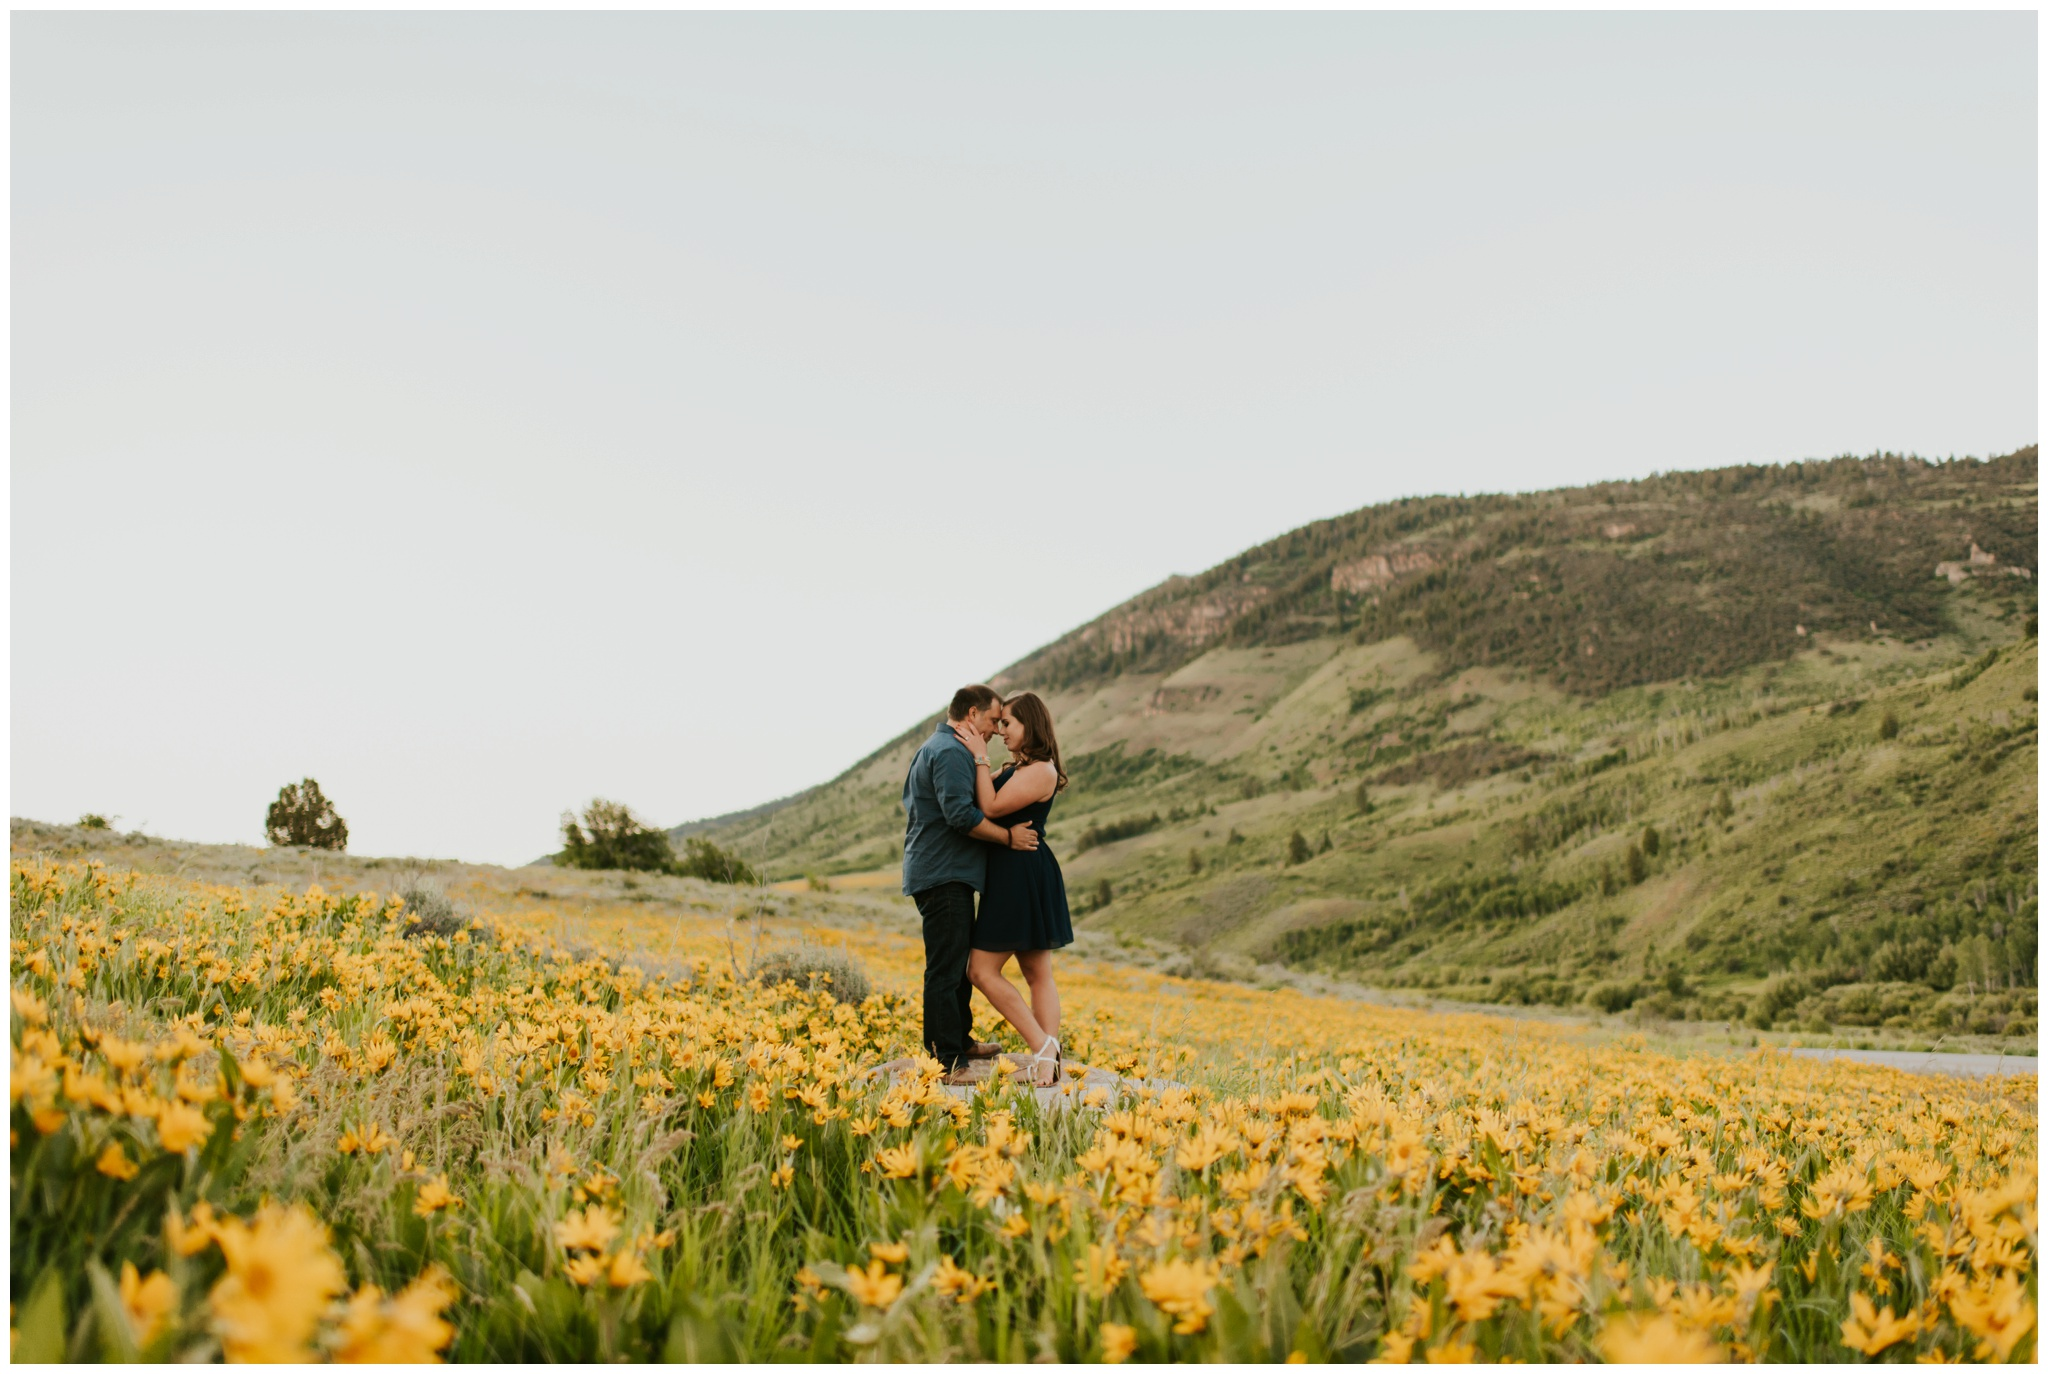 logan-utah-engagement-photos-rachel-dave-30.jpg